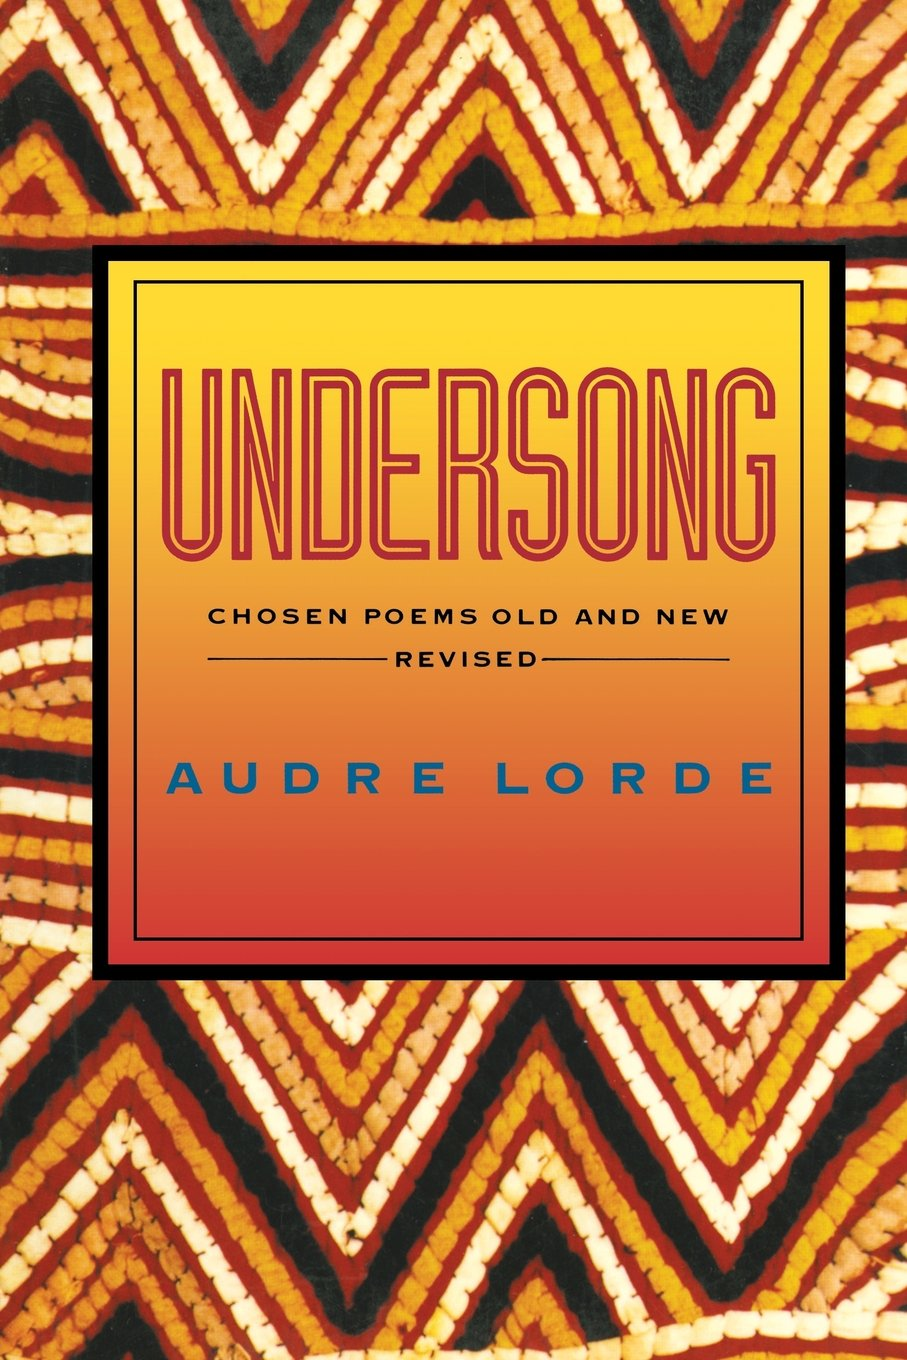 Undersong: Chosen Poems Old and New by Audre Lorde